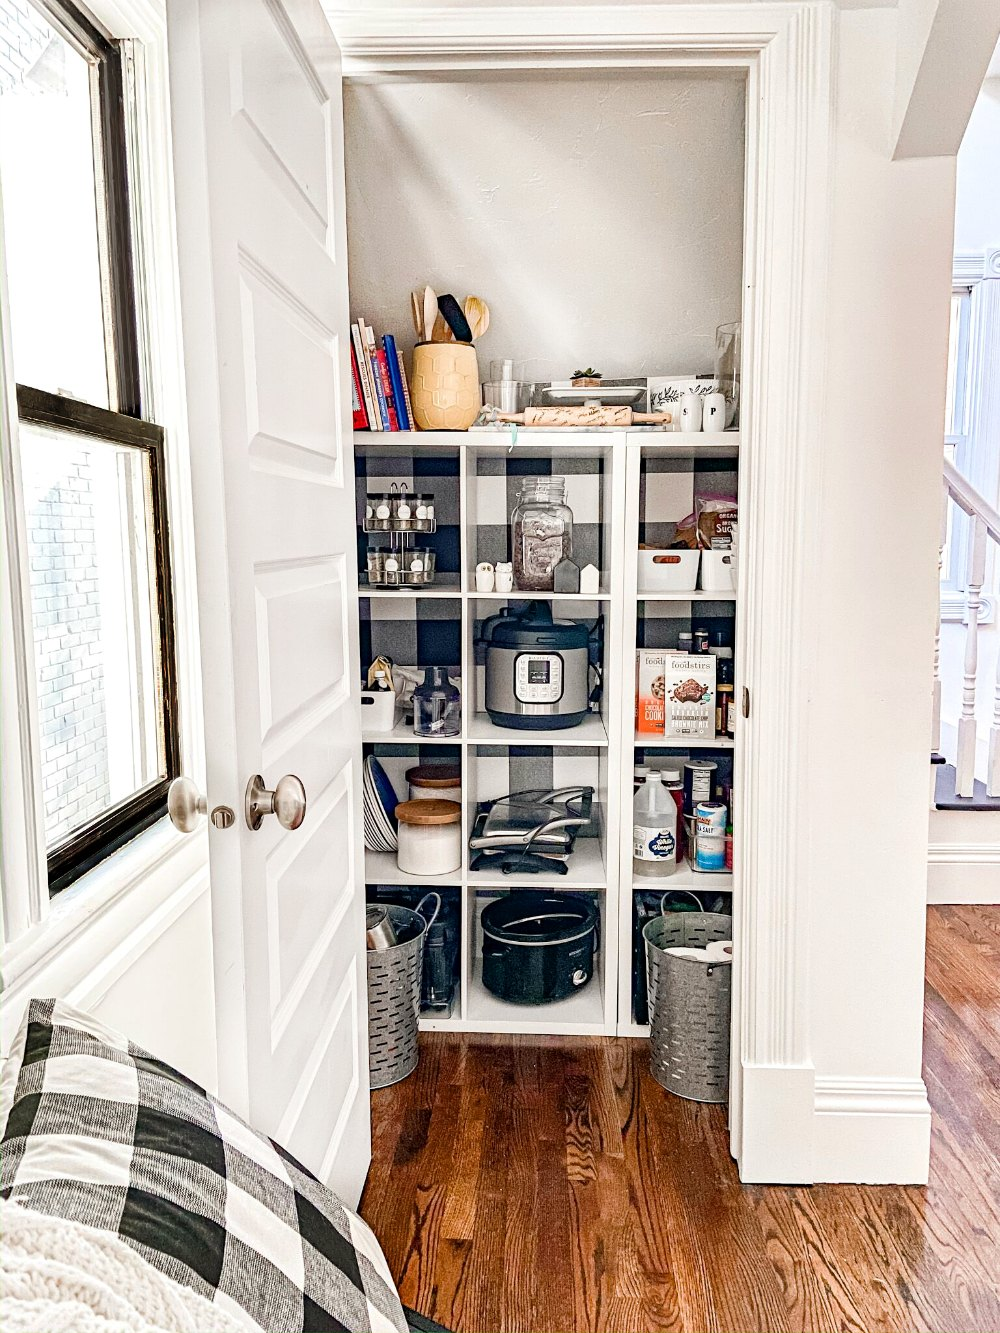 Turn a Closet into a Pantry in one hour! Get organized by turning a coat closet into a pantry in this project that can be put together in one hour!  #organization #kitchenpantry #kitchenorganization #organized